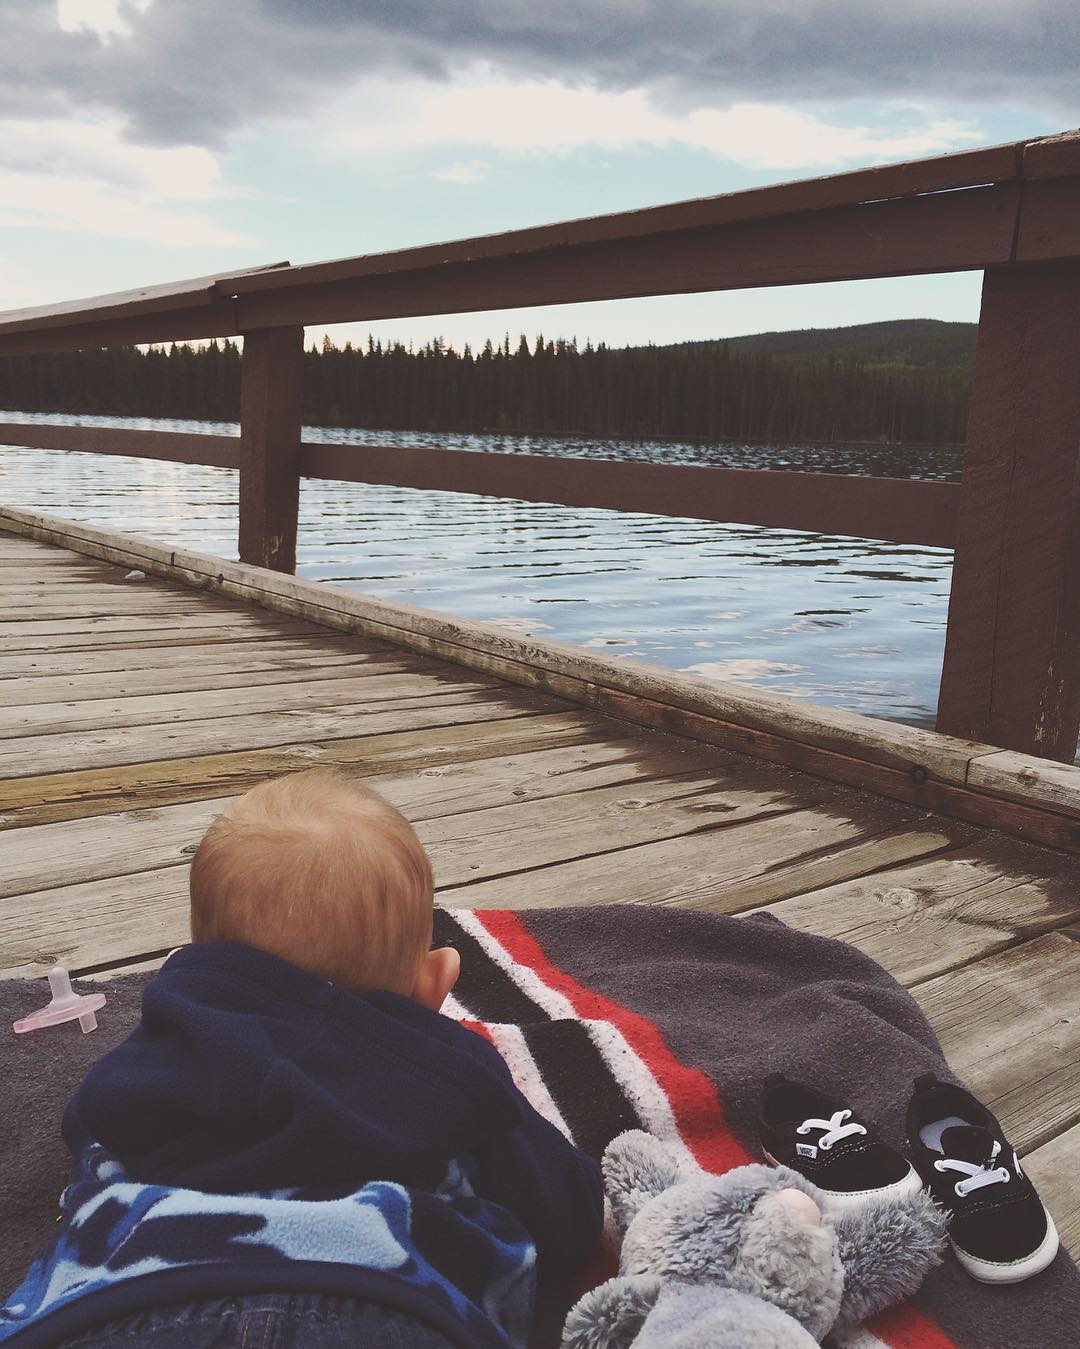 Graham loved tummy time on the pier! We'll be coming back to this beautiful place again soon!